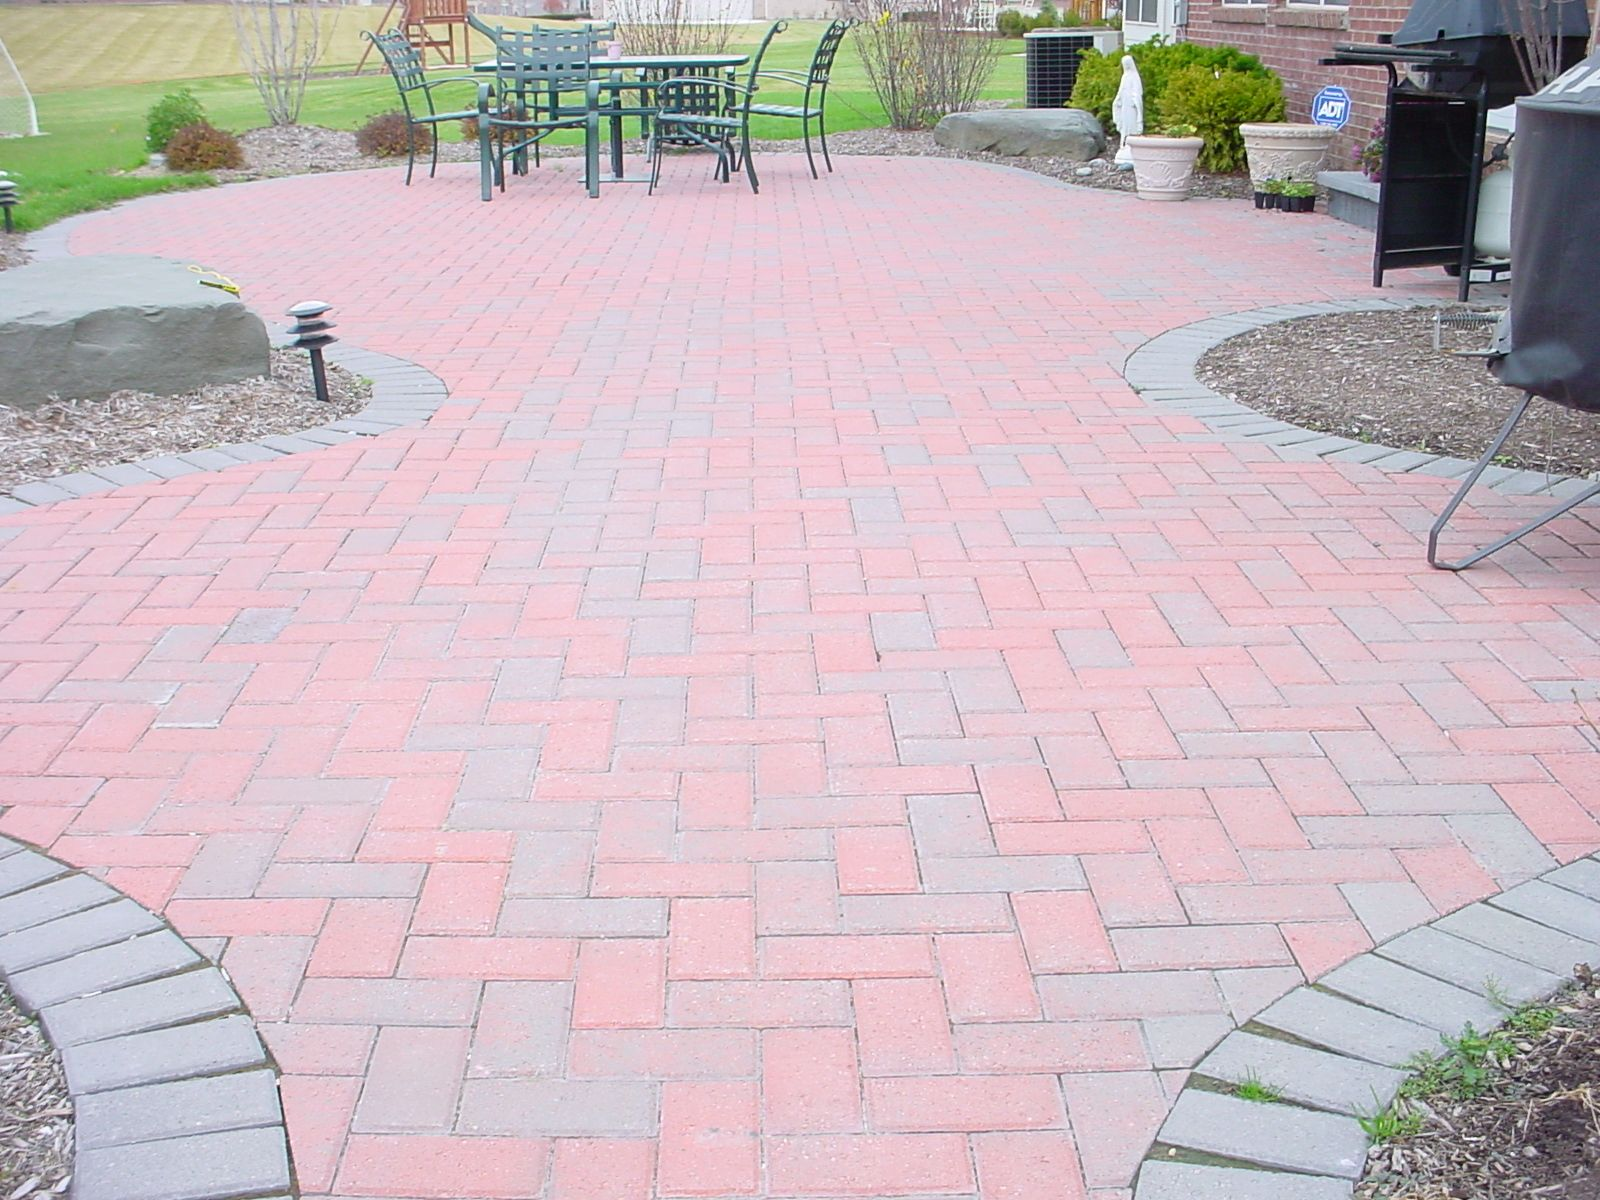 Red Hollandstone brick paver patio. in 2019 | Patio, Brick ... on Red Paver Patio Ideas id=36266